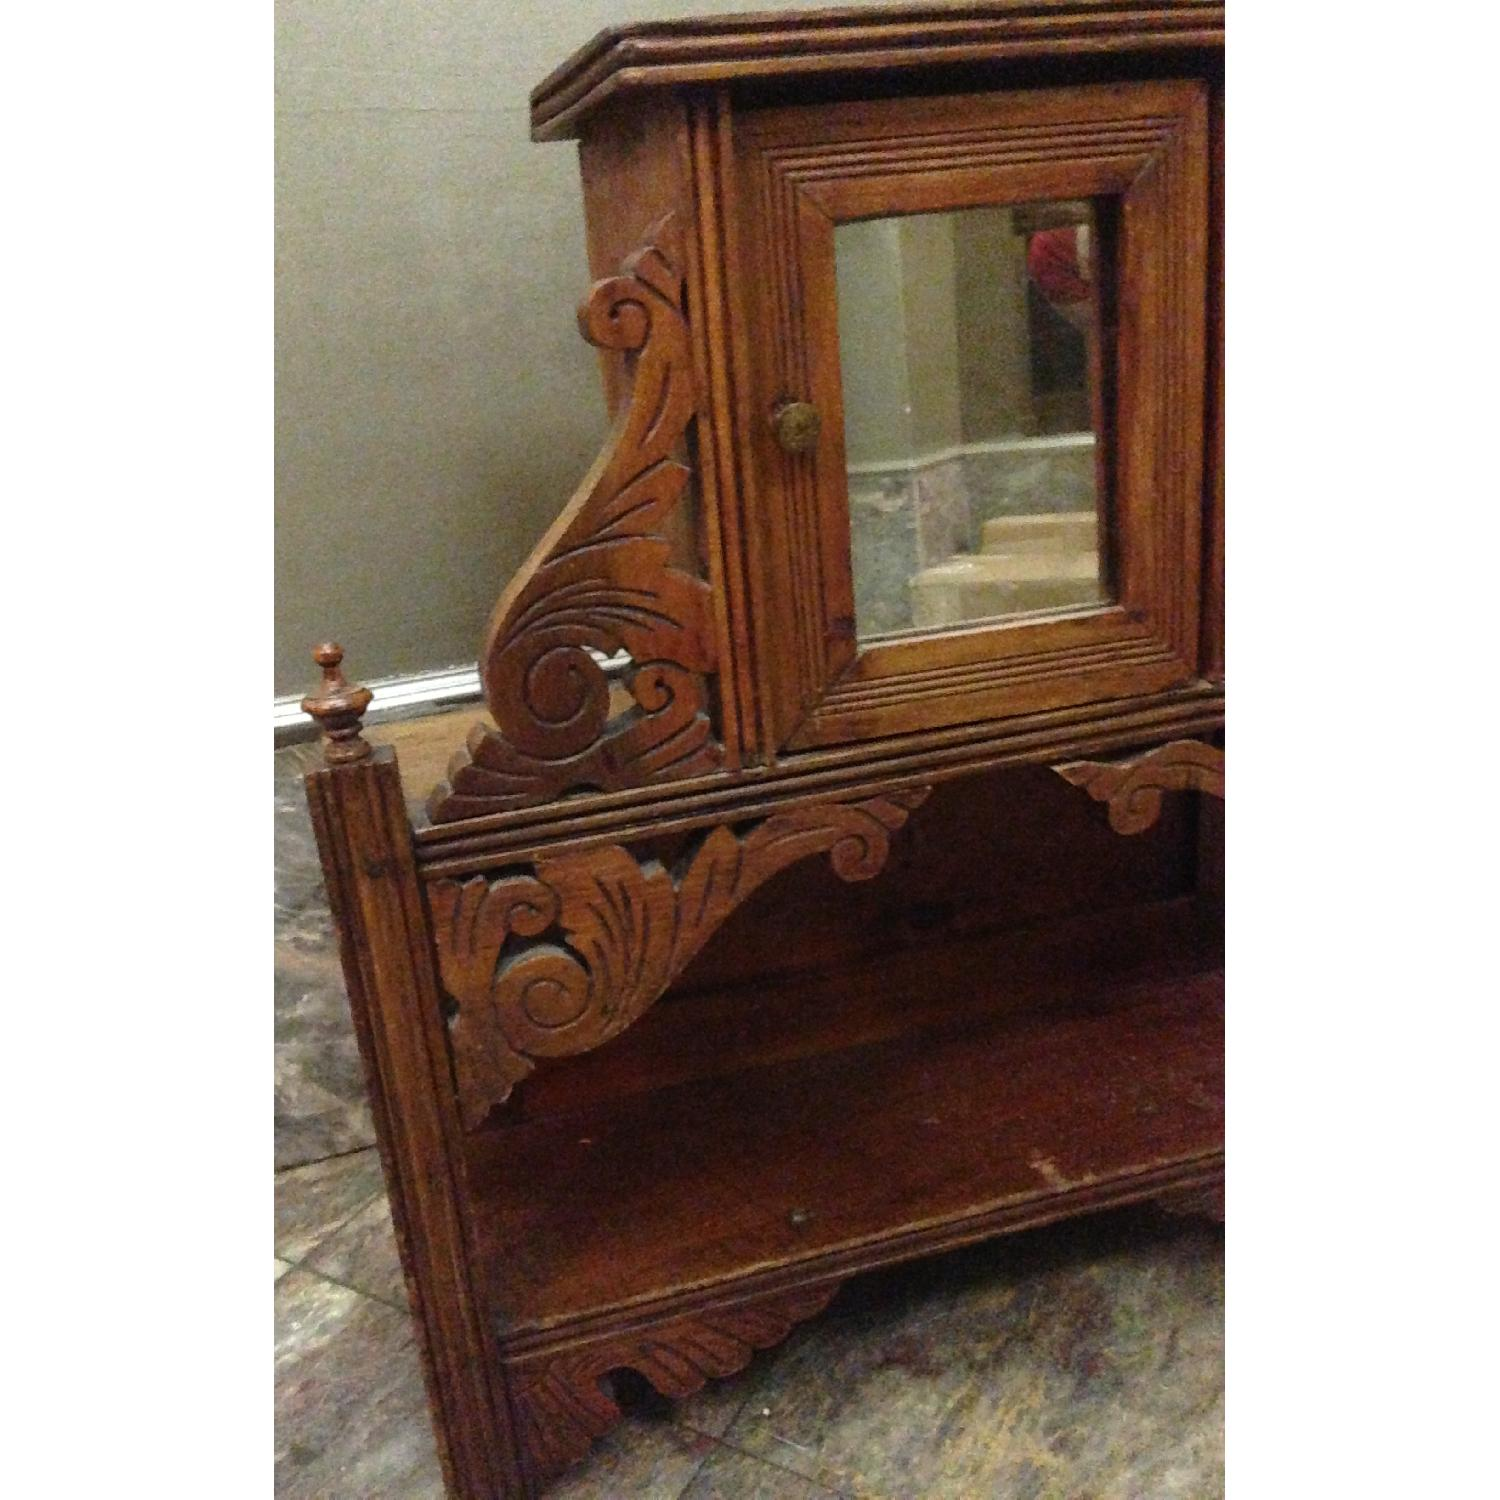 Antique Hand Crafted Wall Cabinet/Display Shelf w/ Mirror - image-7